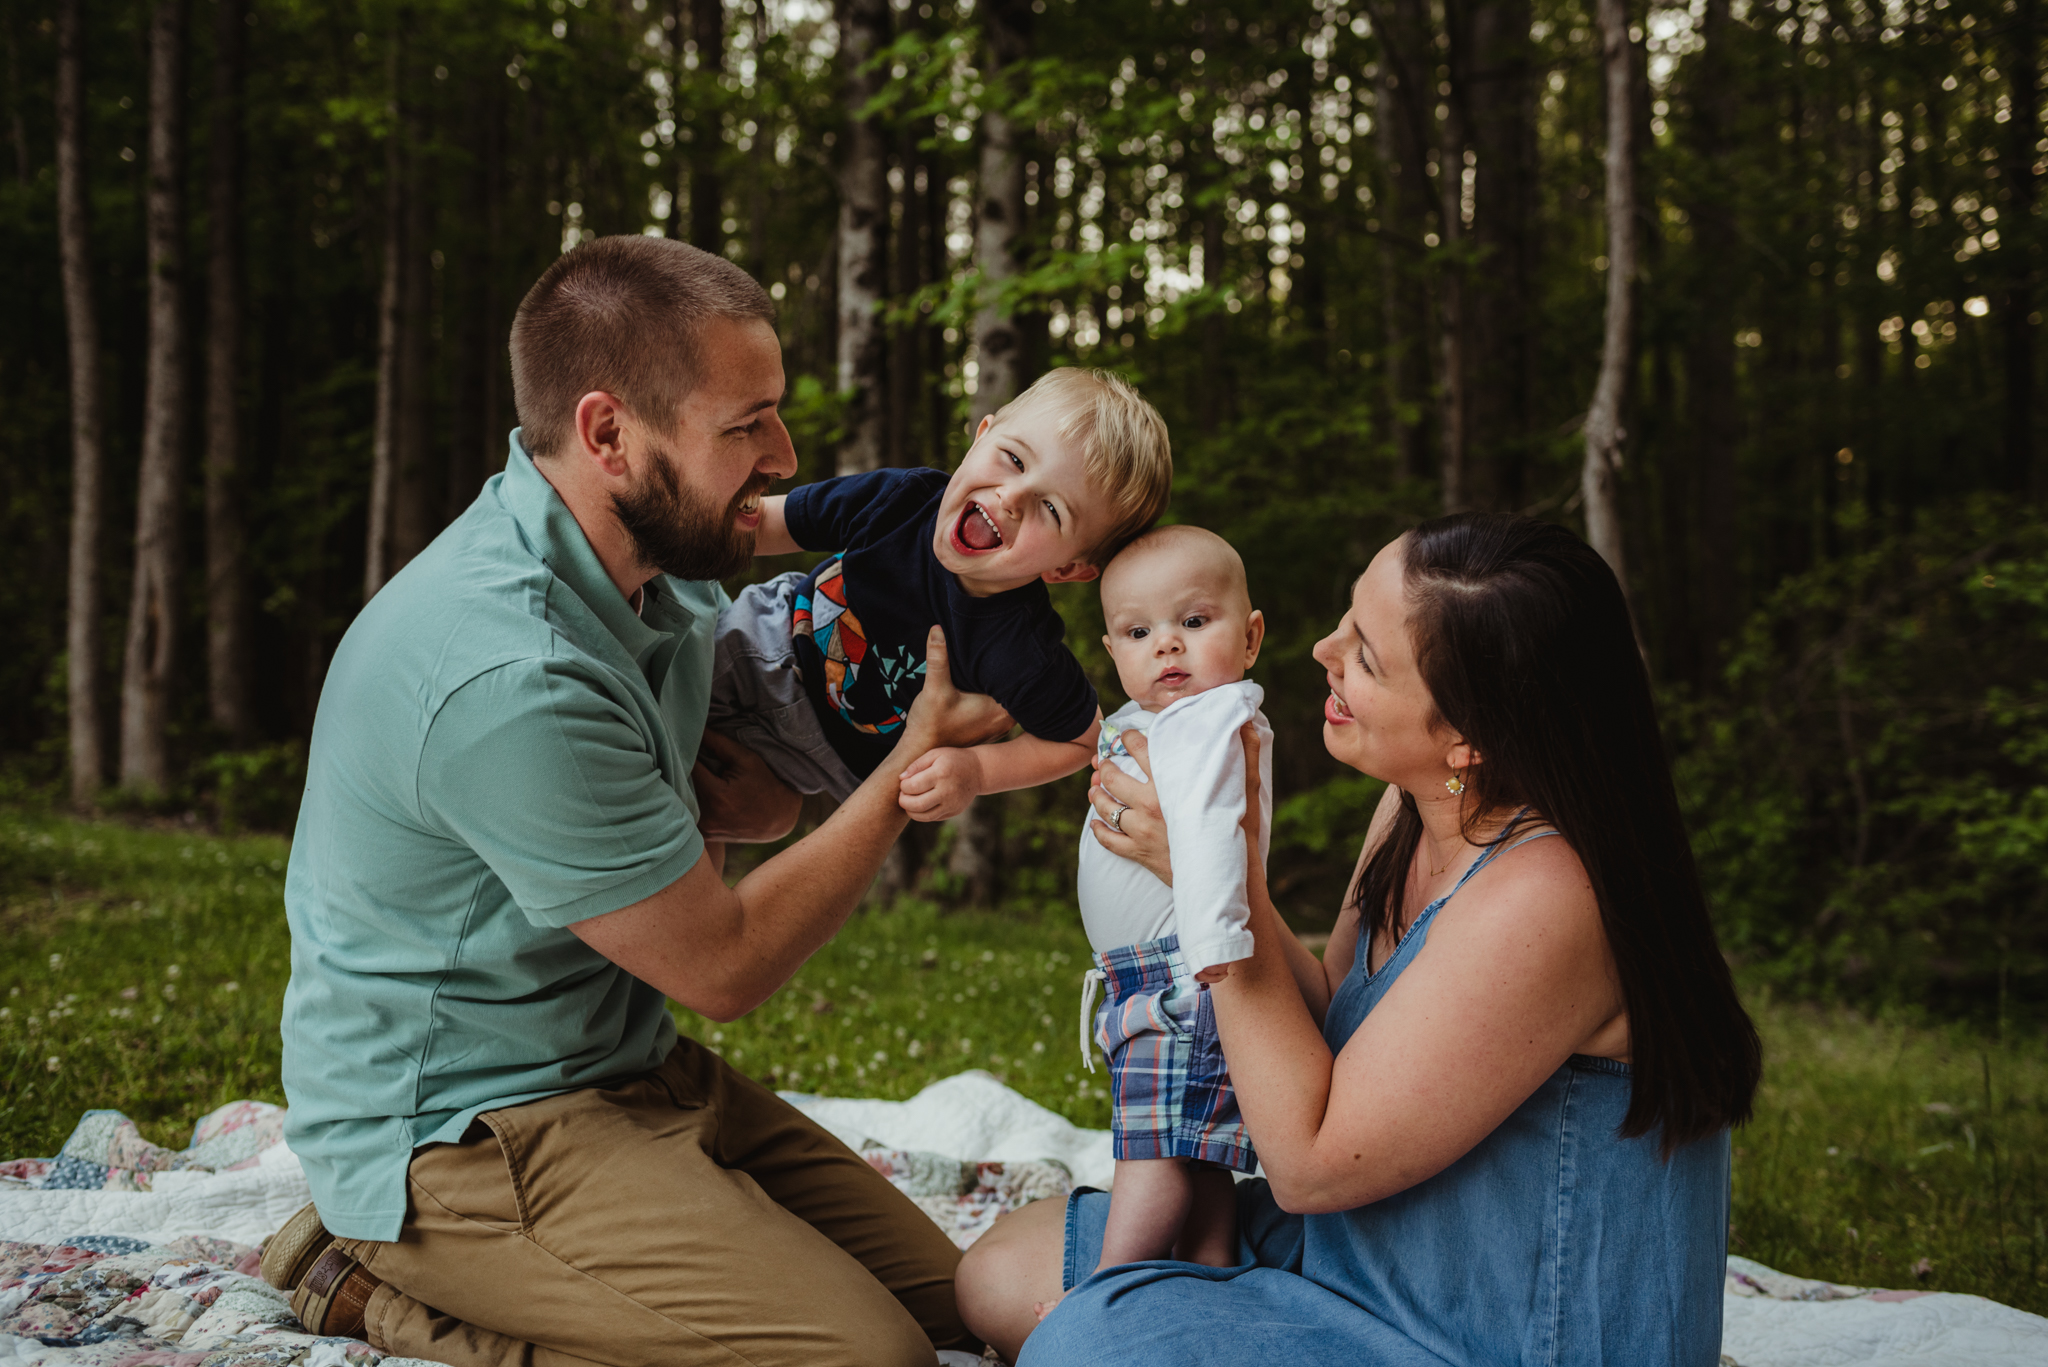 This family of four sits together on a quilt during their family photo session with Rose Trail Images in Rolesville, North Carolina.